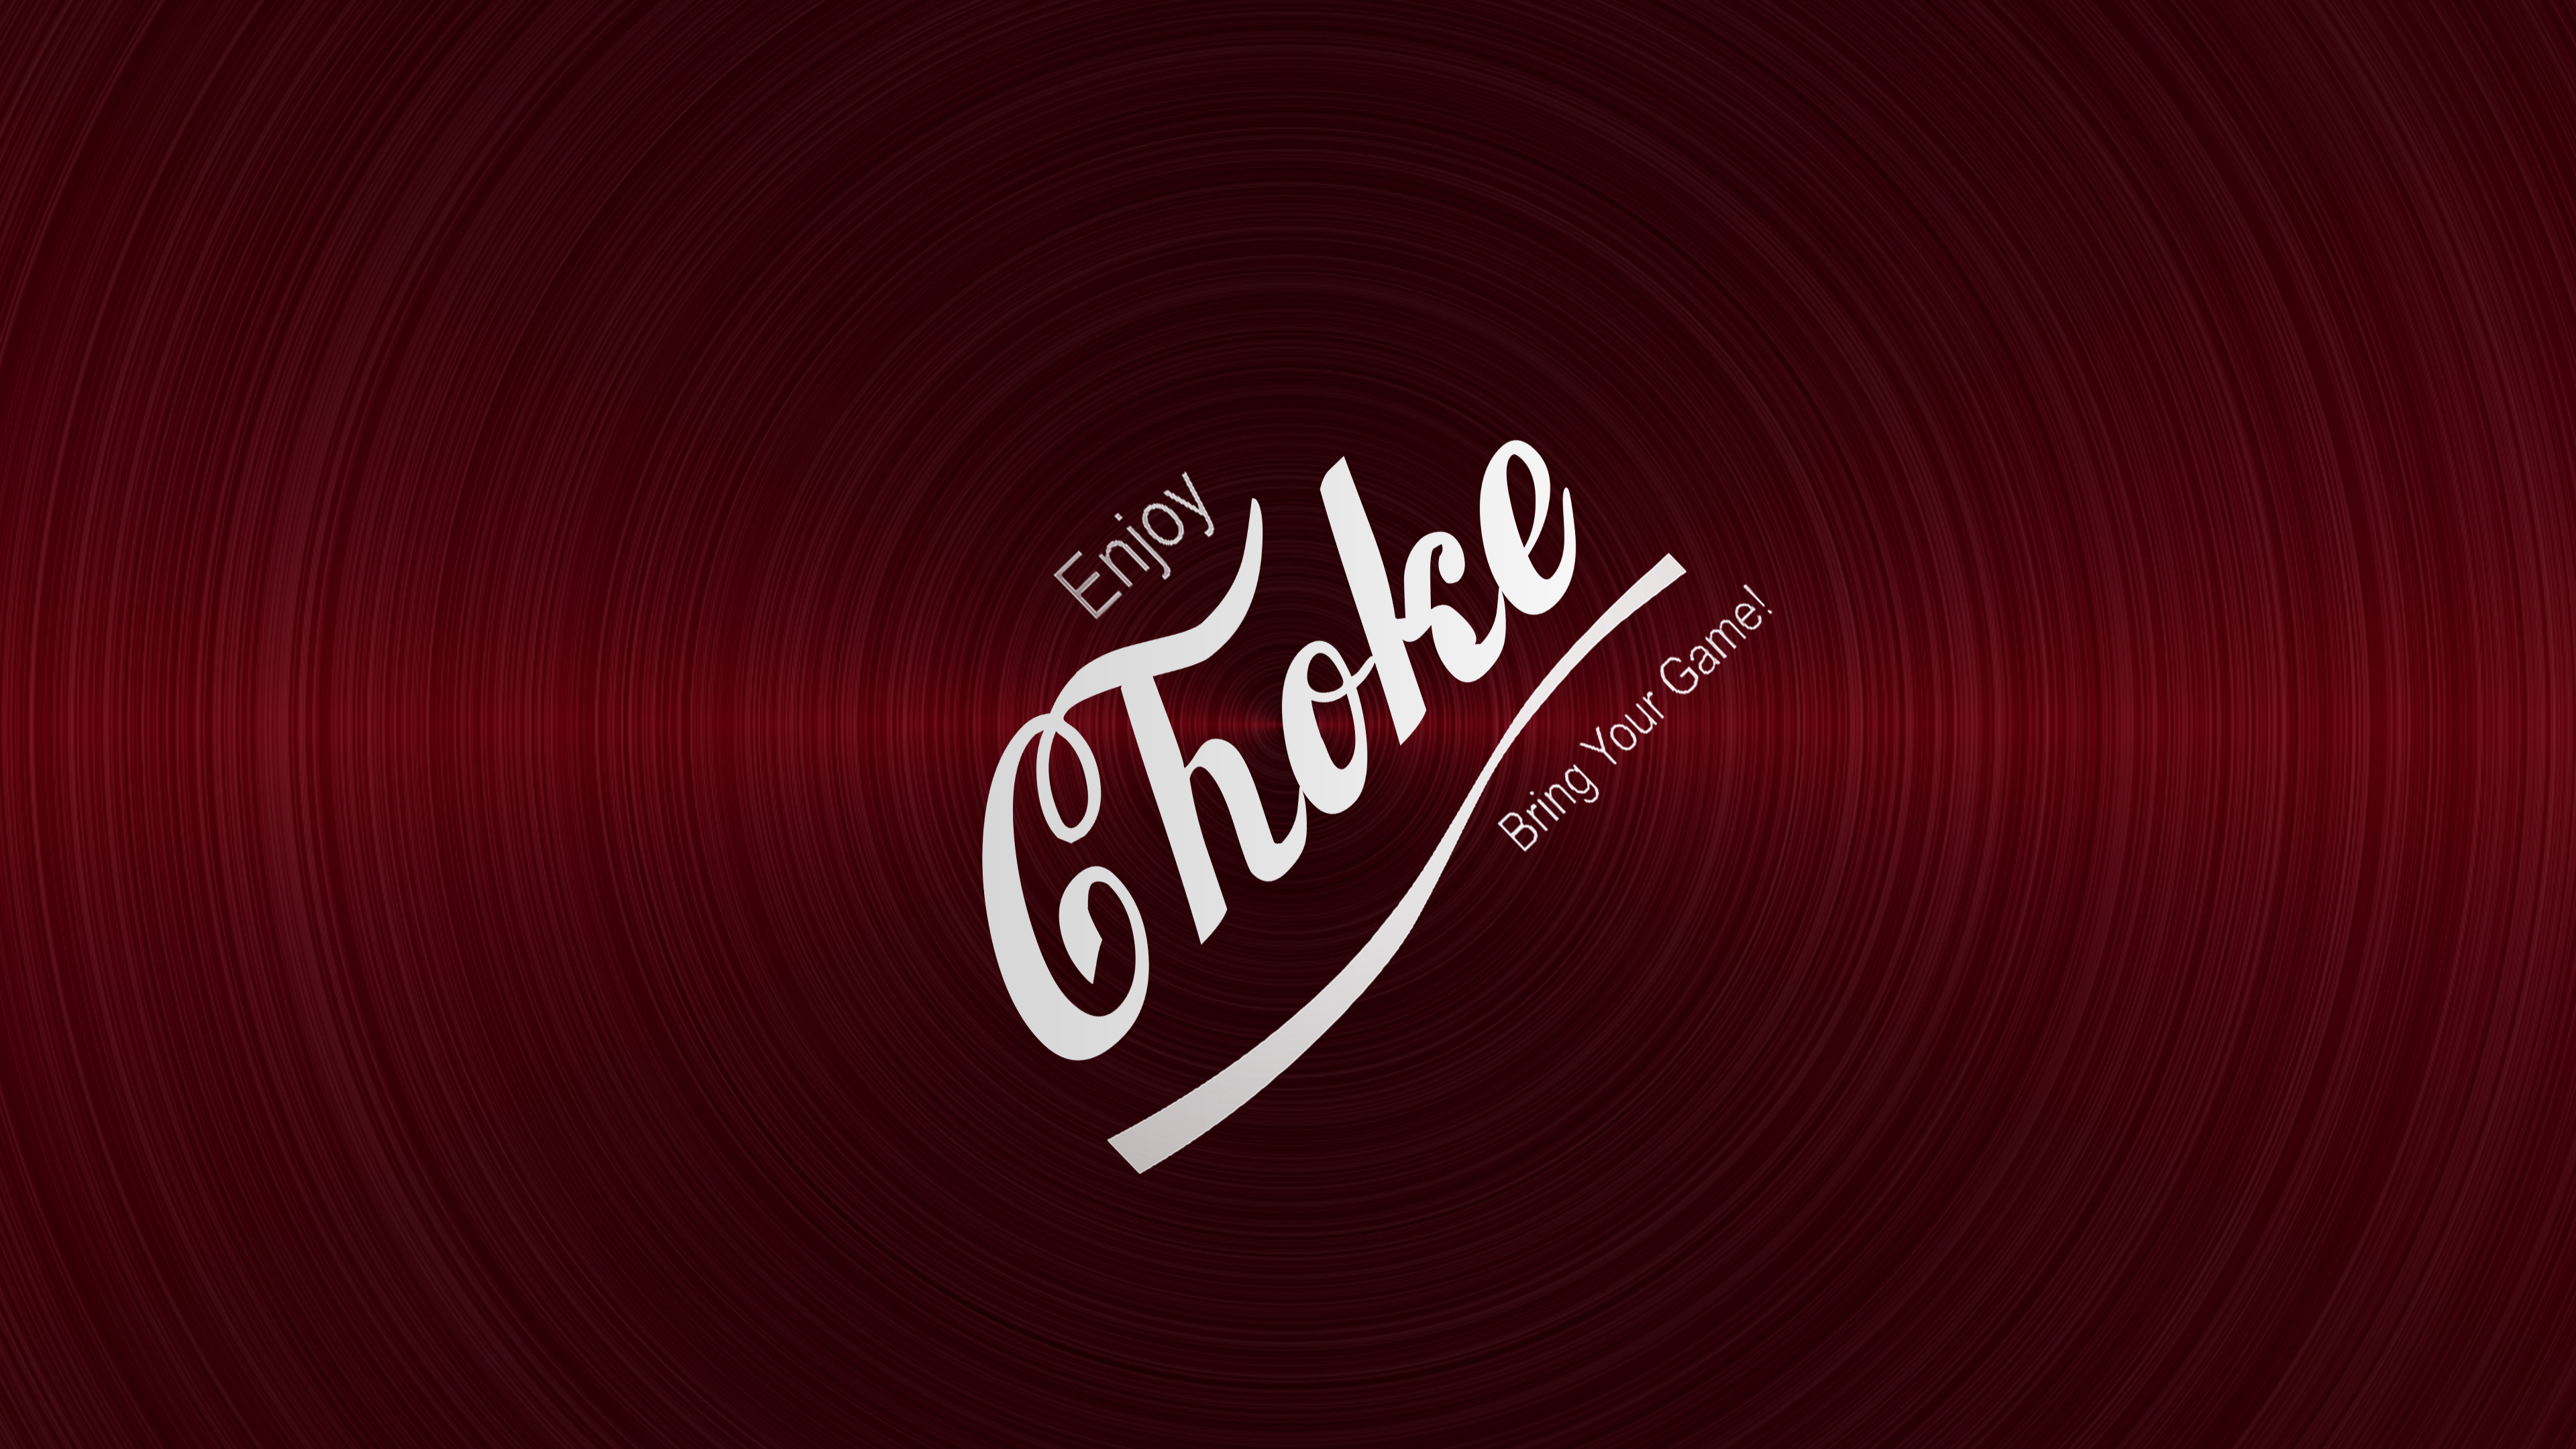 Jiu Jitsu Enjoy Choke Red Brushed Metal Background Angled